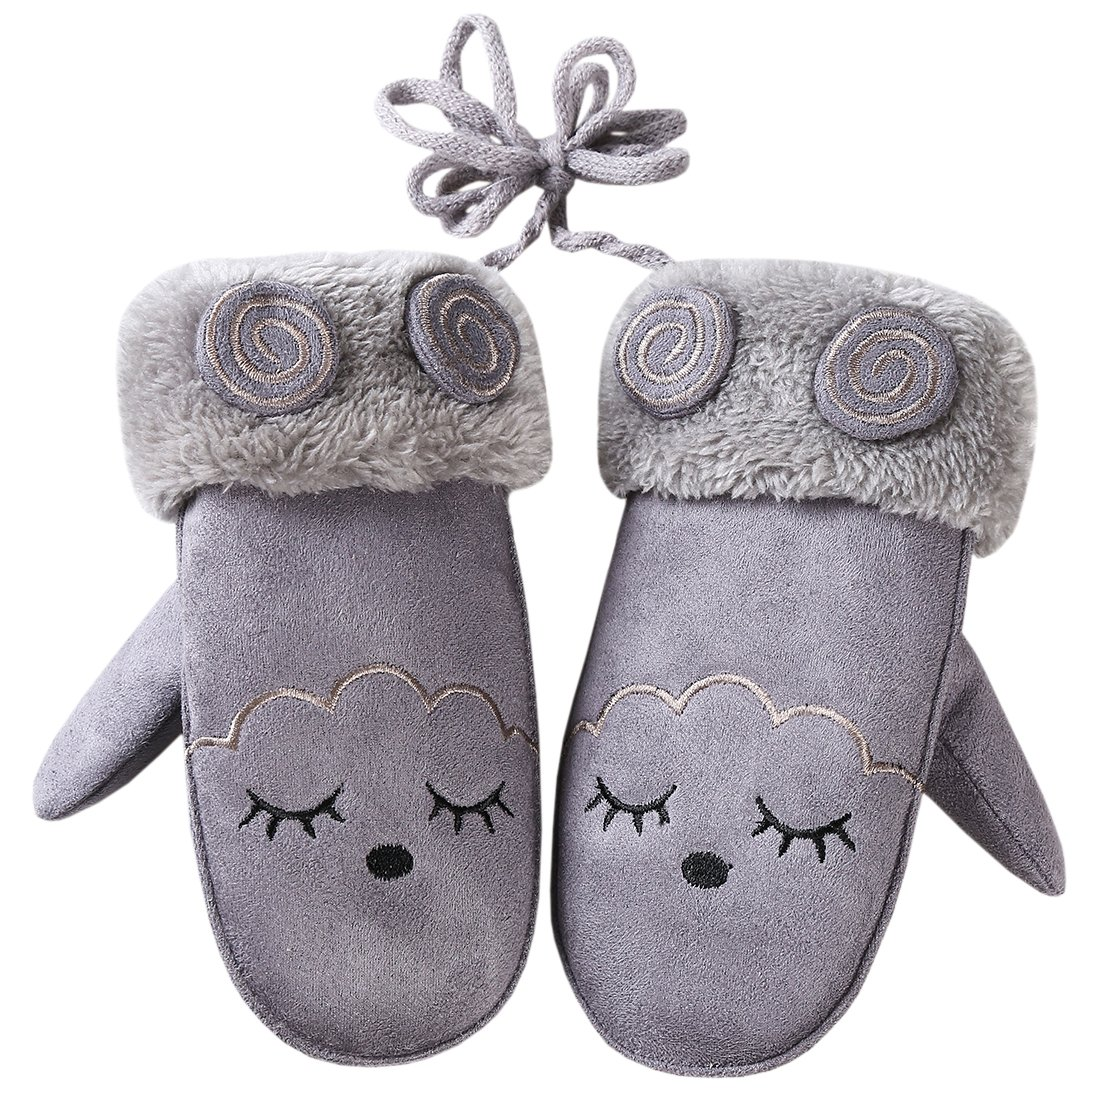 BaiX Girls' and Boys' Cute Cartoon Windproof Suede Mittens Kids Warm Gloves G16812346